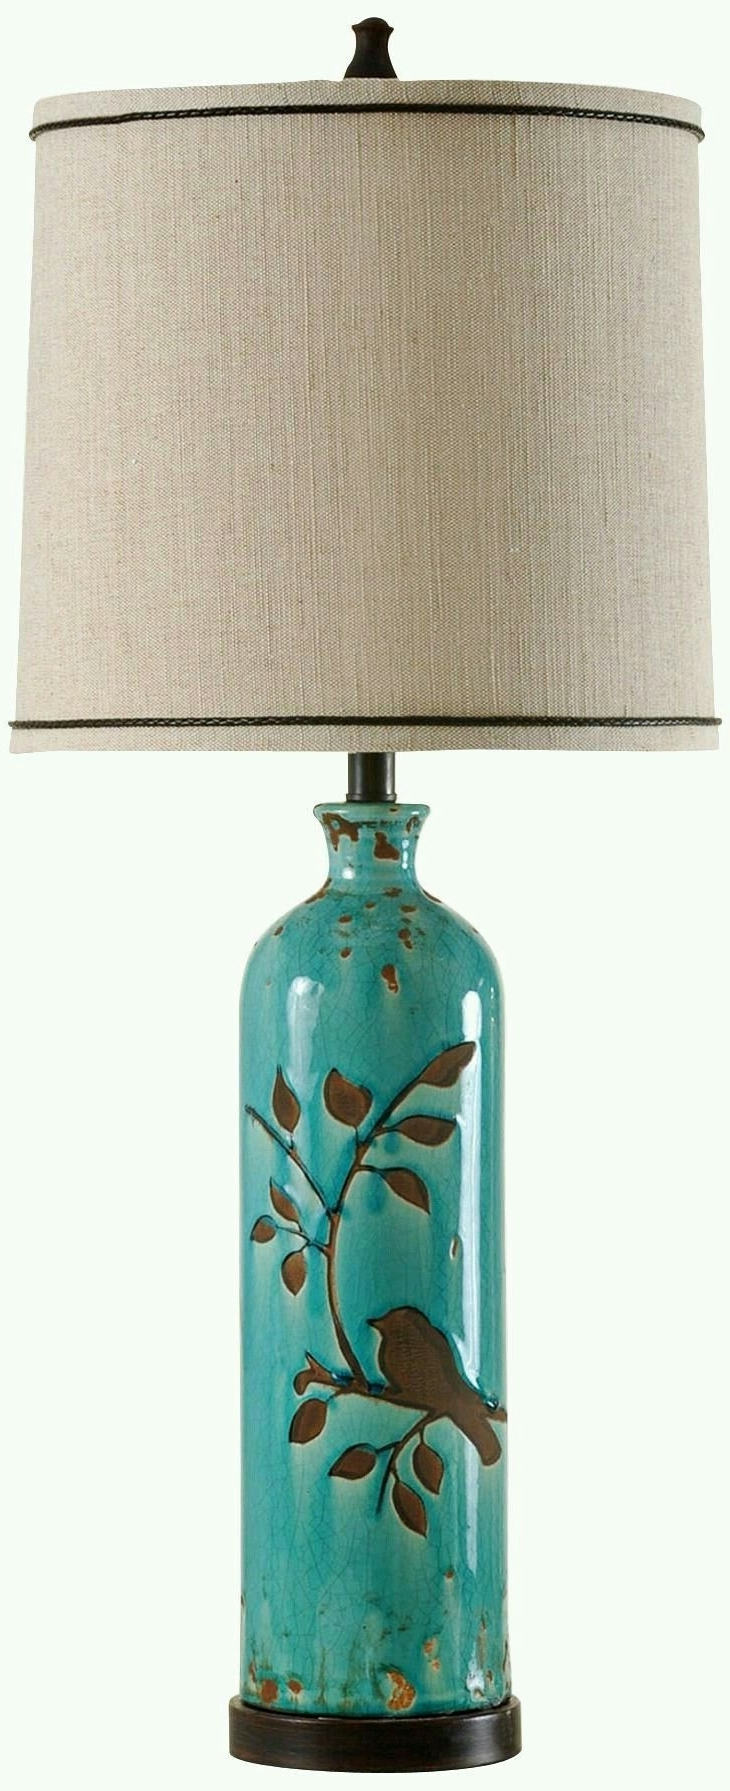 2018 Teal Living Room Table Lamps With Regard To Pinguzin Oz On Iki (View 2 of 15)